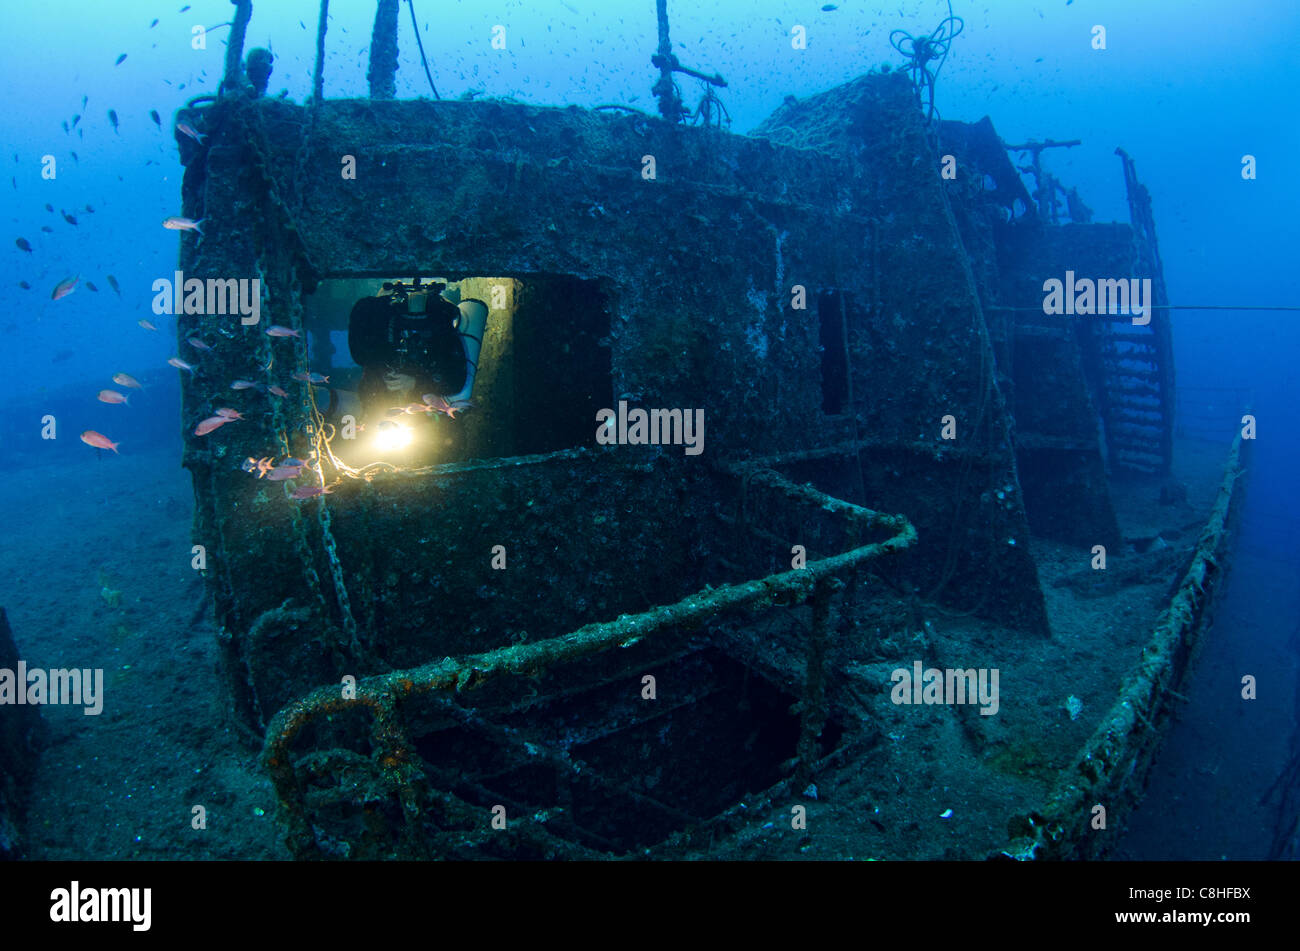 Wreck of haven amoco milford haven tanker arenzano liguria italy stock photo 39723262 alamy - Tech dive arenzano ...